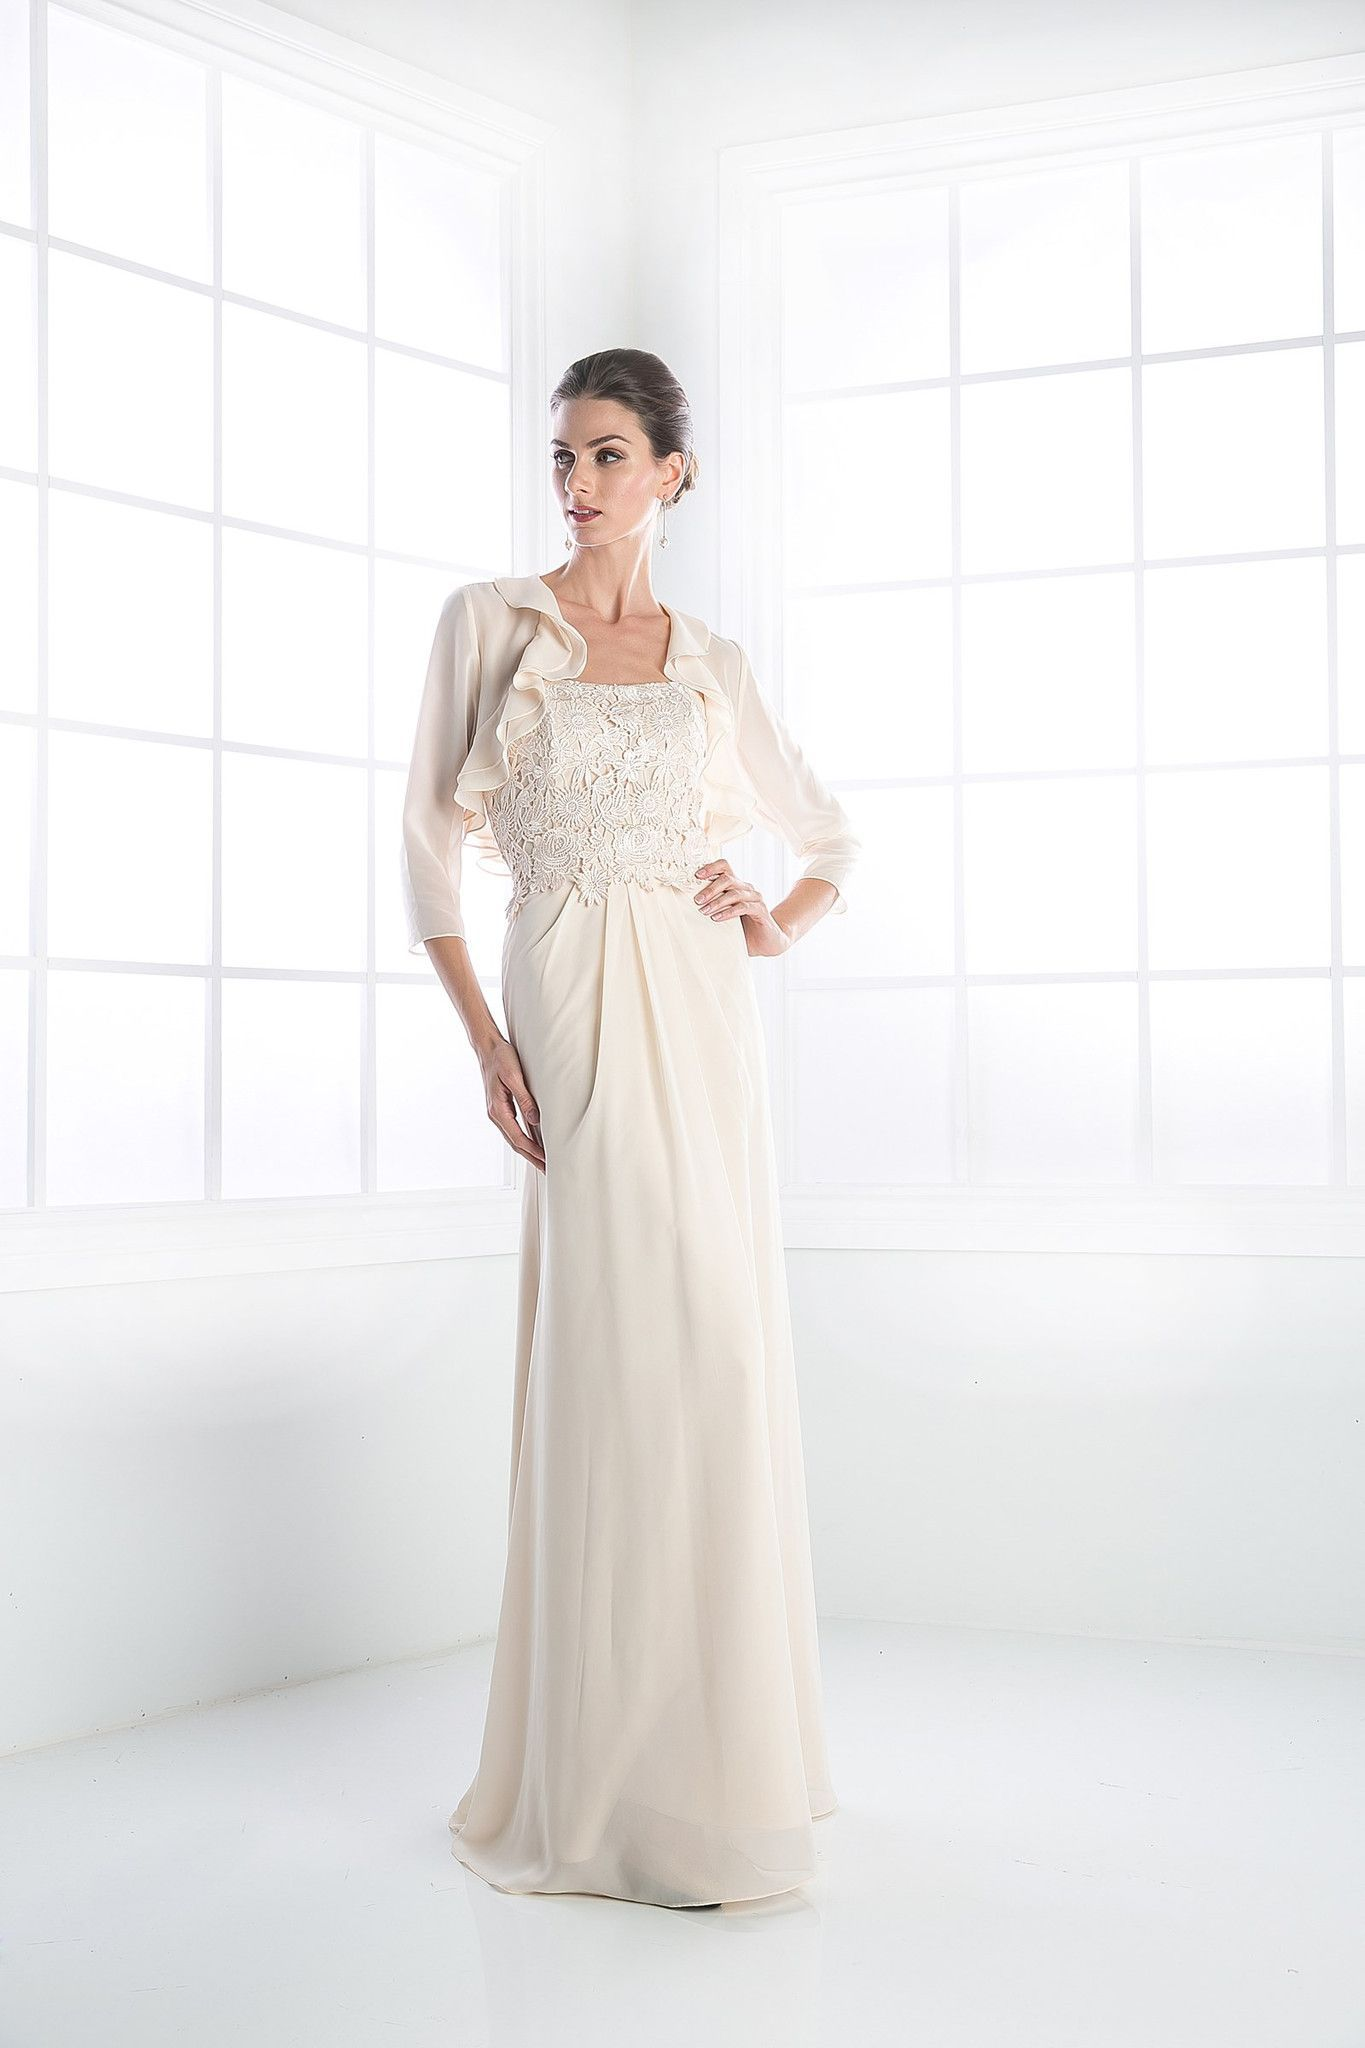 Plus size jacket dress for wedding  An elegant modest mother of the bridegroom gown features a